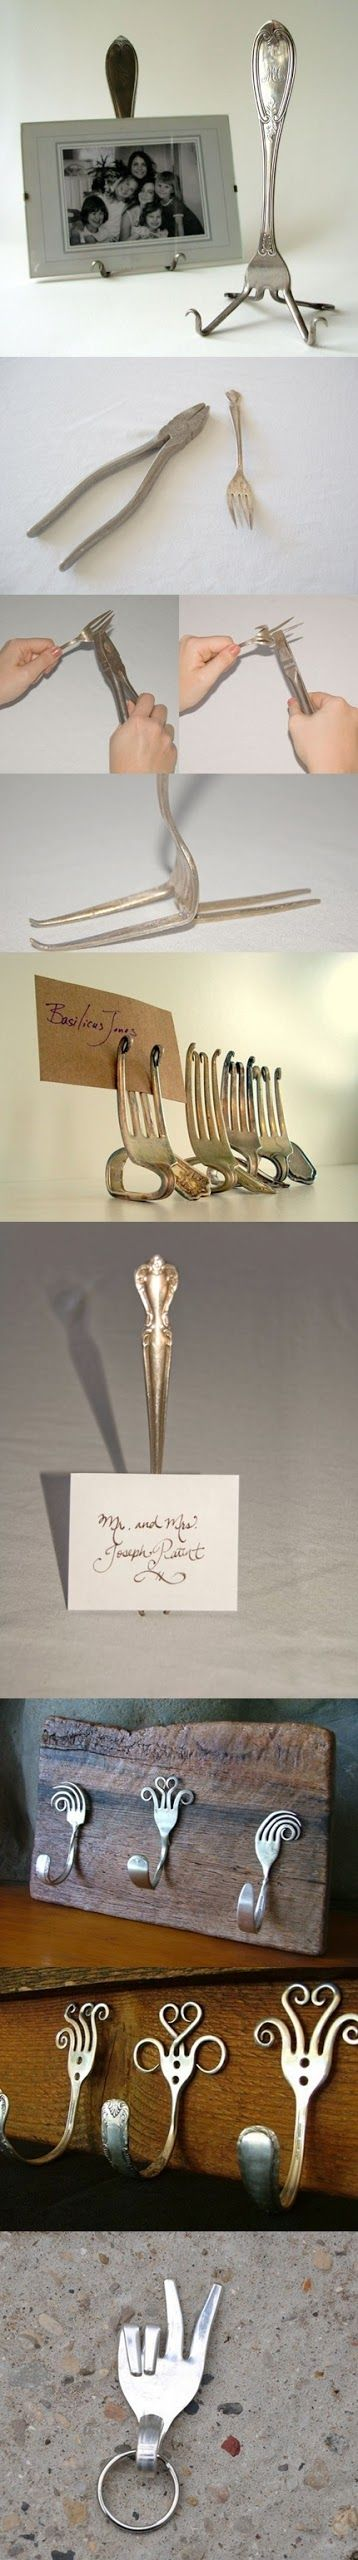 you could do so much with forks